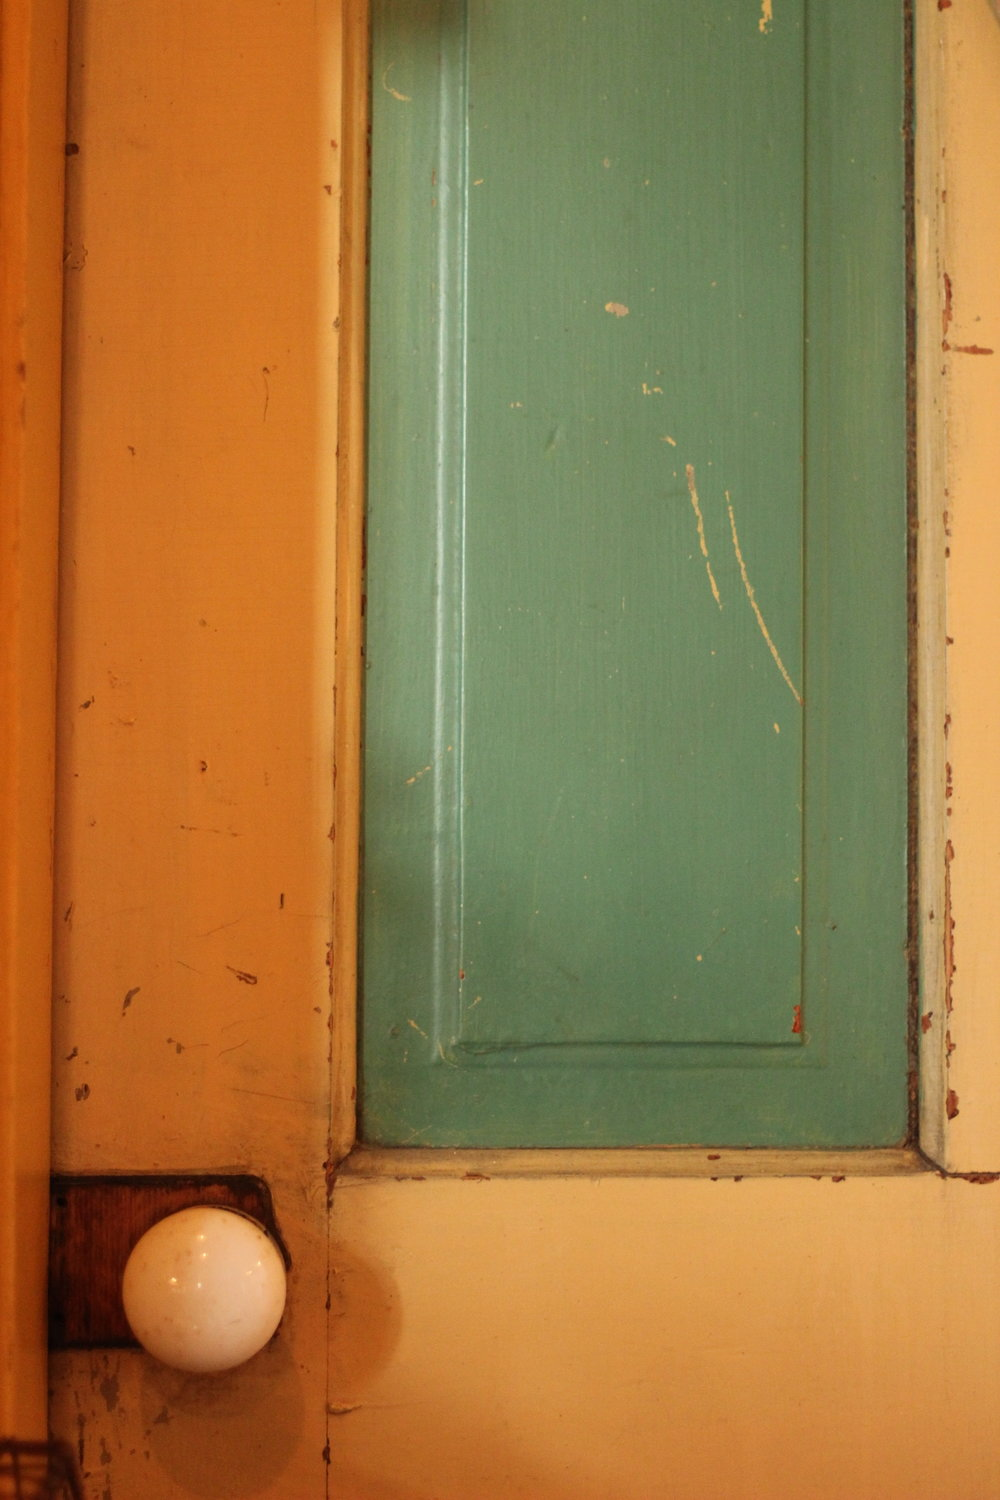 This door divides our kitchen from the front rooms of the house. It's closed and sealed until restoration of the three front rooms is complete.   It's not original to the house. The only doors here when I bought it, in 1986, were hollow core luan. One of my first tasks was to replace every door with on that is historically correct.  When we first saw this door, leaning up in an antique mall booth, we had to have it. Not only are the color spectacular, the yellow nearly matches the kitchen trim.  There are a couple of things to notice here. Humidity plays a huge role in how wood acts, how it can be put together and how finishes look and act. In a door like this the green wooden panels float between rails and stiles. They are allowed to float so that they don't split when the humidity drops -- and wood shrinks -- in the winter. The bare wood reveal around the perimeter of the panels might indicate that the door was originally painted in fairly humid conditions when the panels had expanded to full width. In the winter -- when the furnace kicks on -- household humidity plummets and wood contracts. In this case leaving bare wood around the panels.  The bumps and dings on the door are constant with doors in service areas of the house -- kitchen, pantry, basement or a back door. Many of these dings might have occurred as folks pushed open the door and dragged tools, boxes or other large items across it. My back door has similar marks from my backpack. My mother complained about my trombone case and doors over 40 years ago.